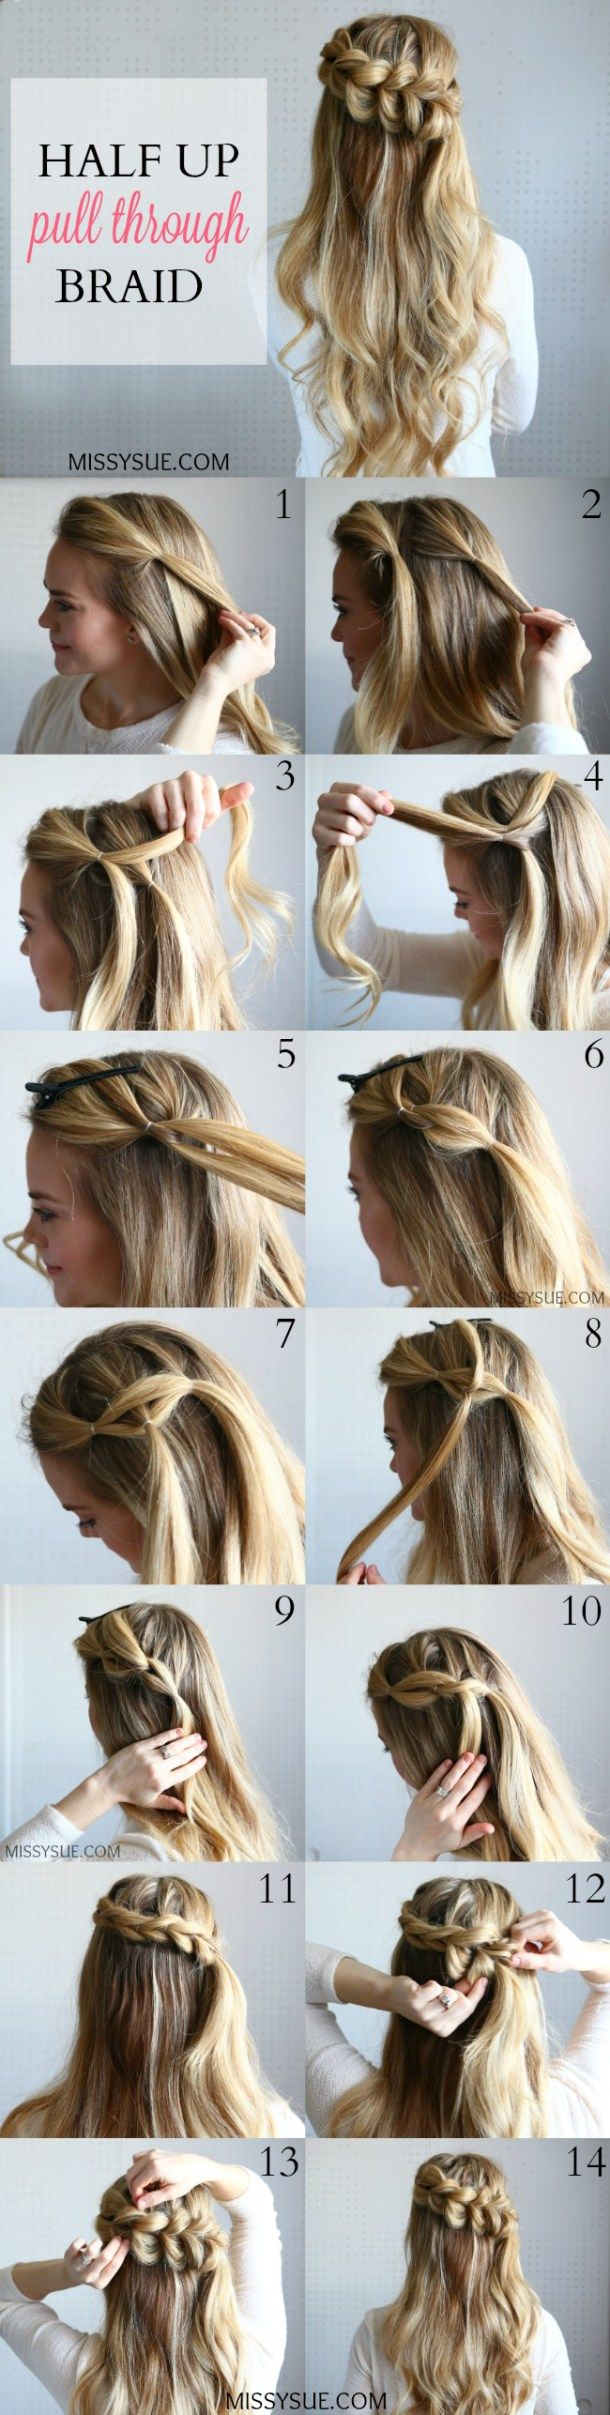 best hair styles images on pinterest cute hairstyles hairstyle